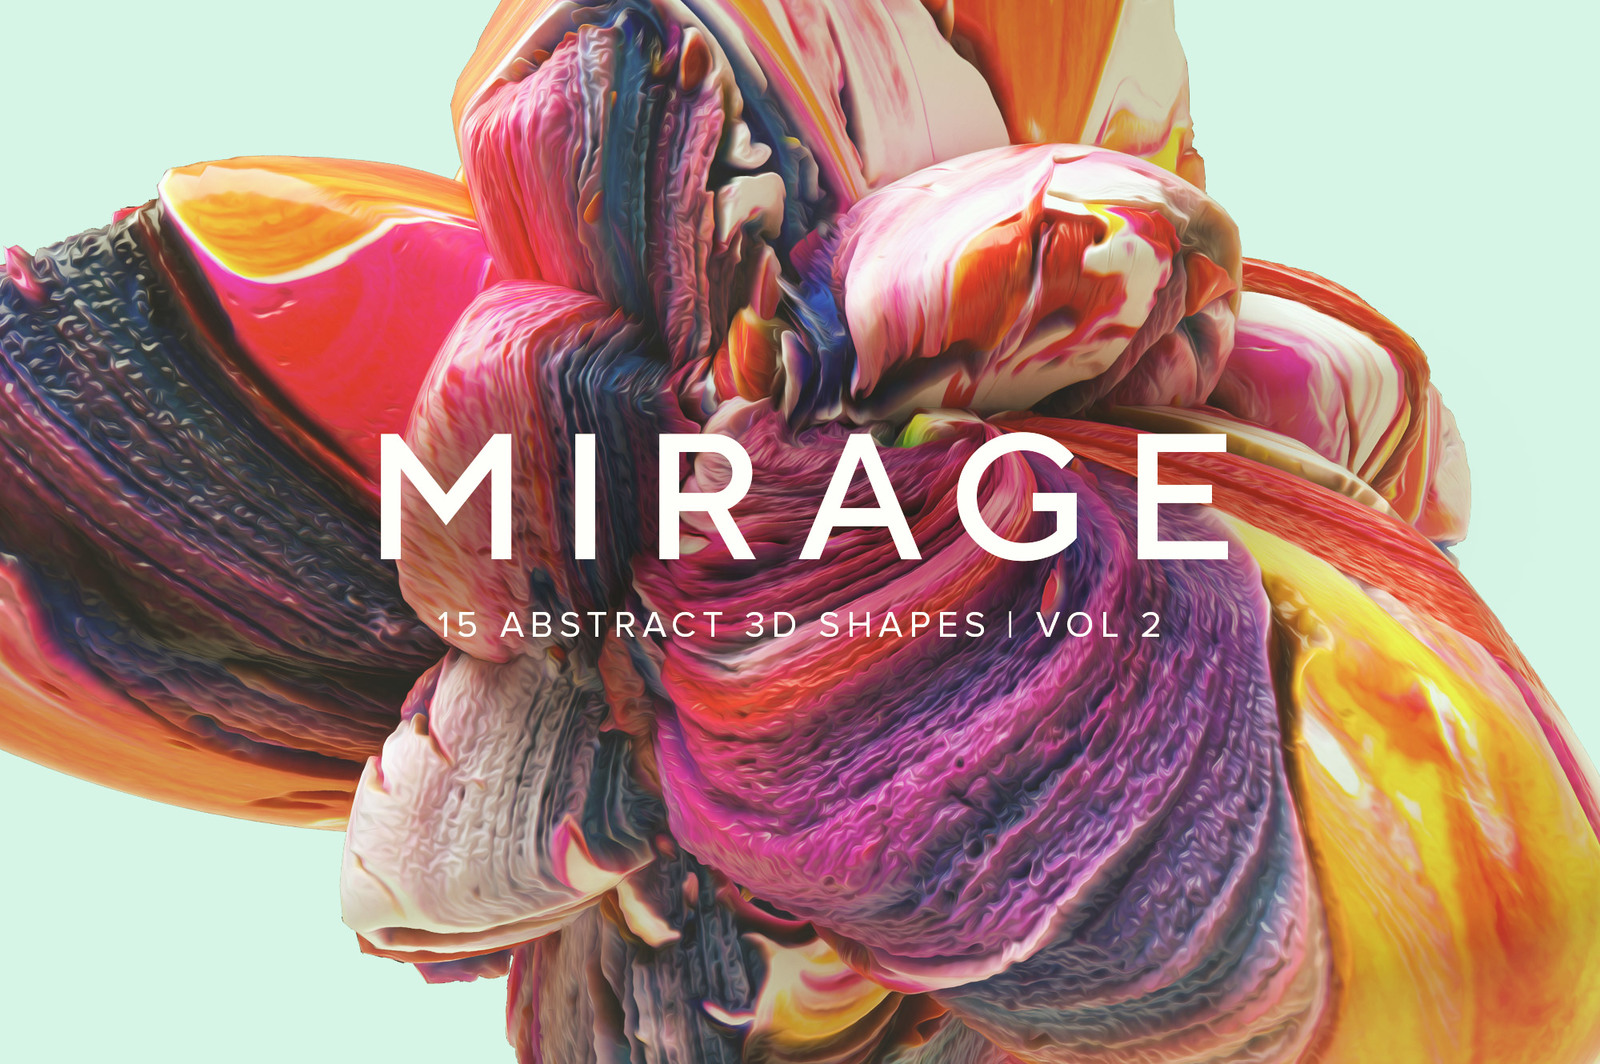 Mirage Vol.2: Abstract 3D Shapes